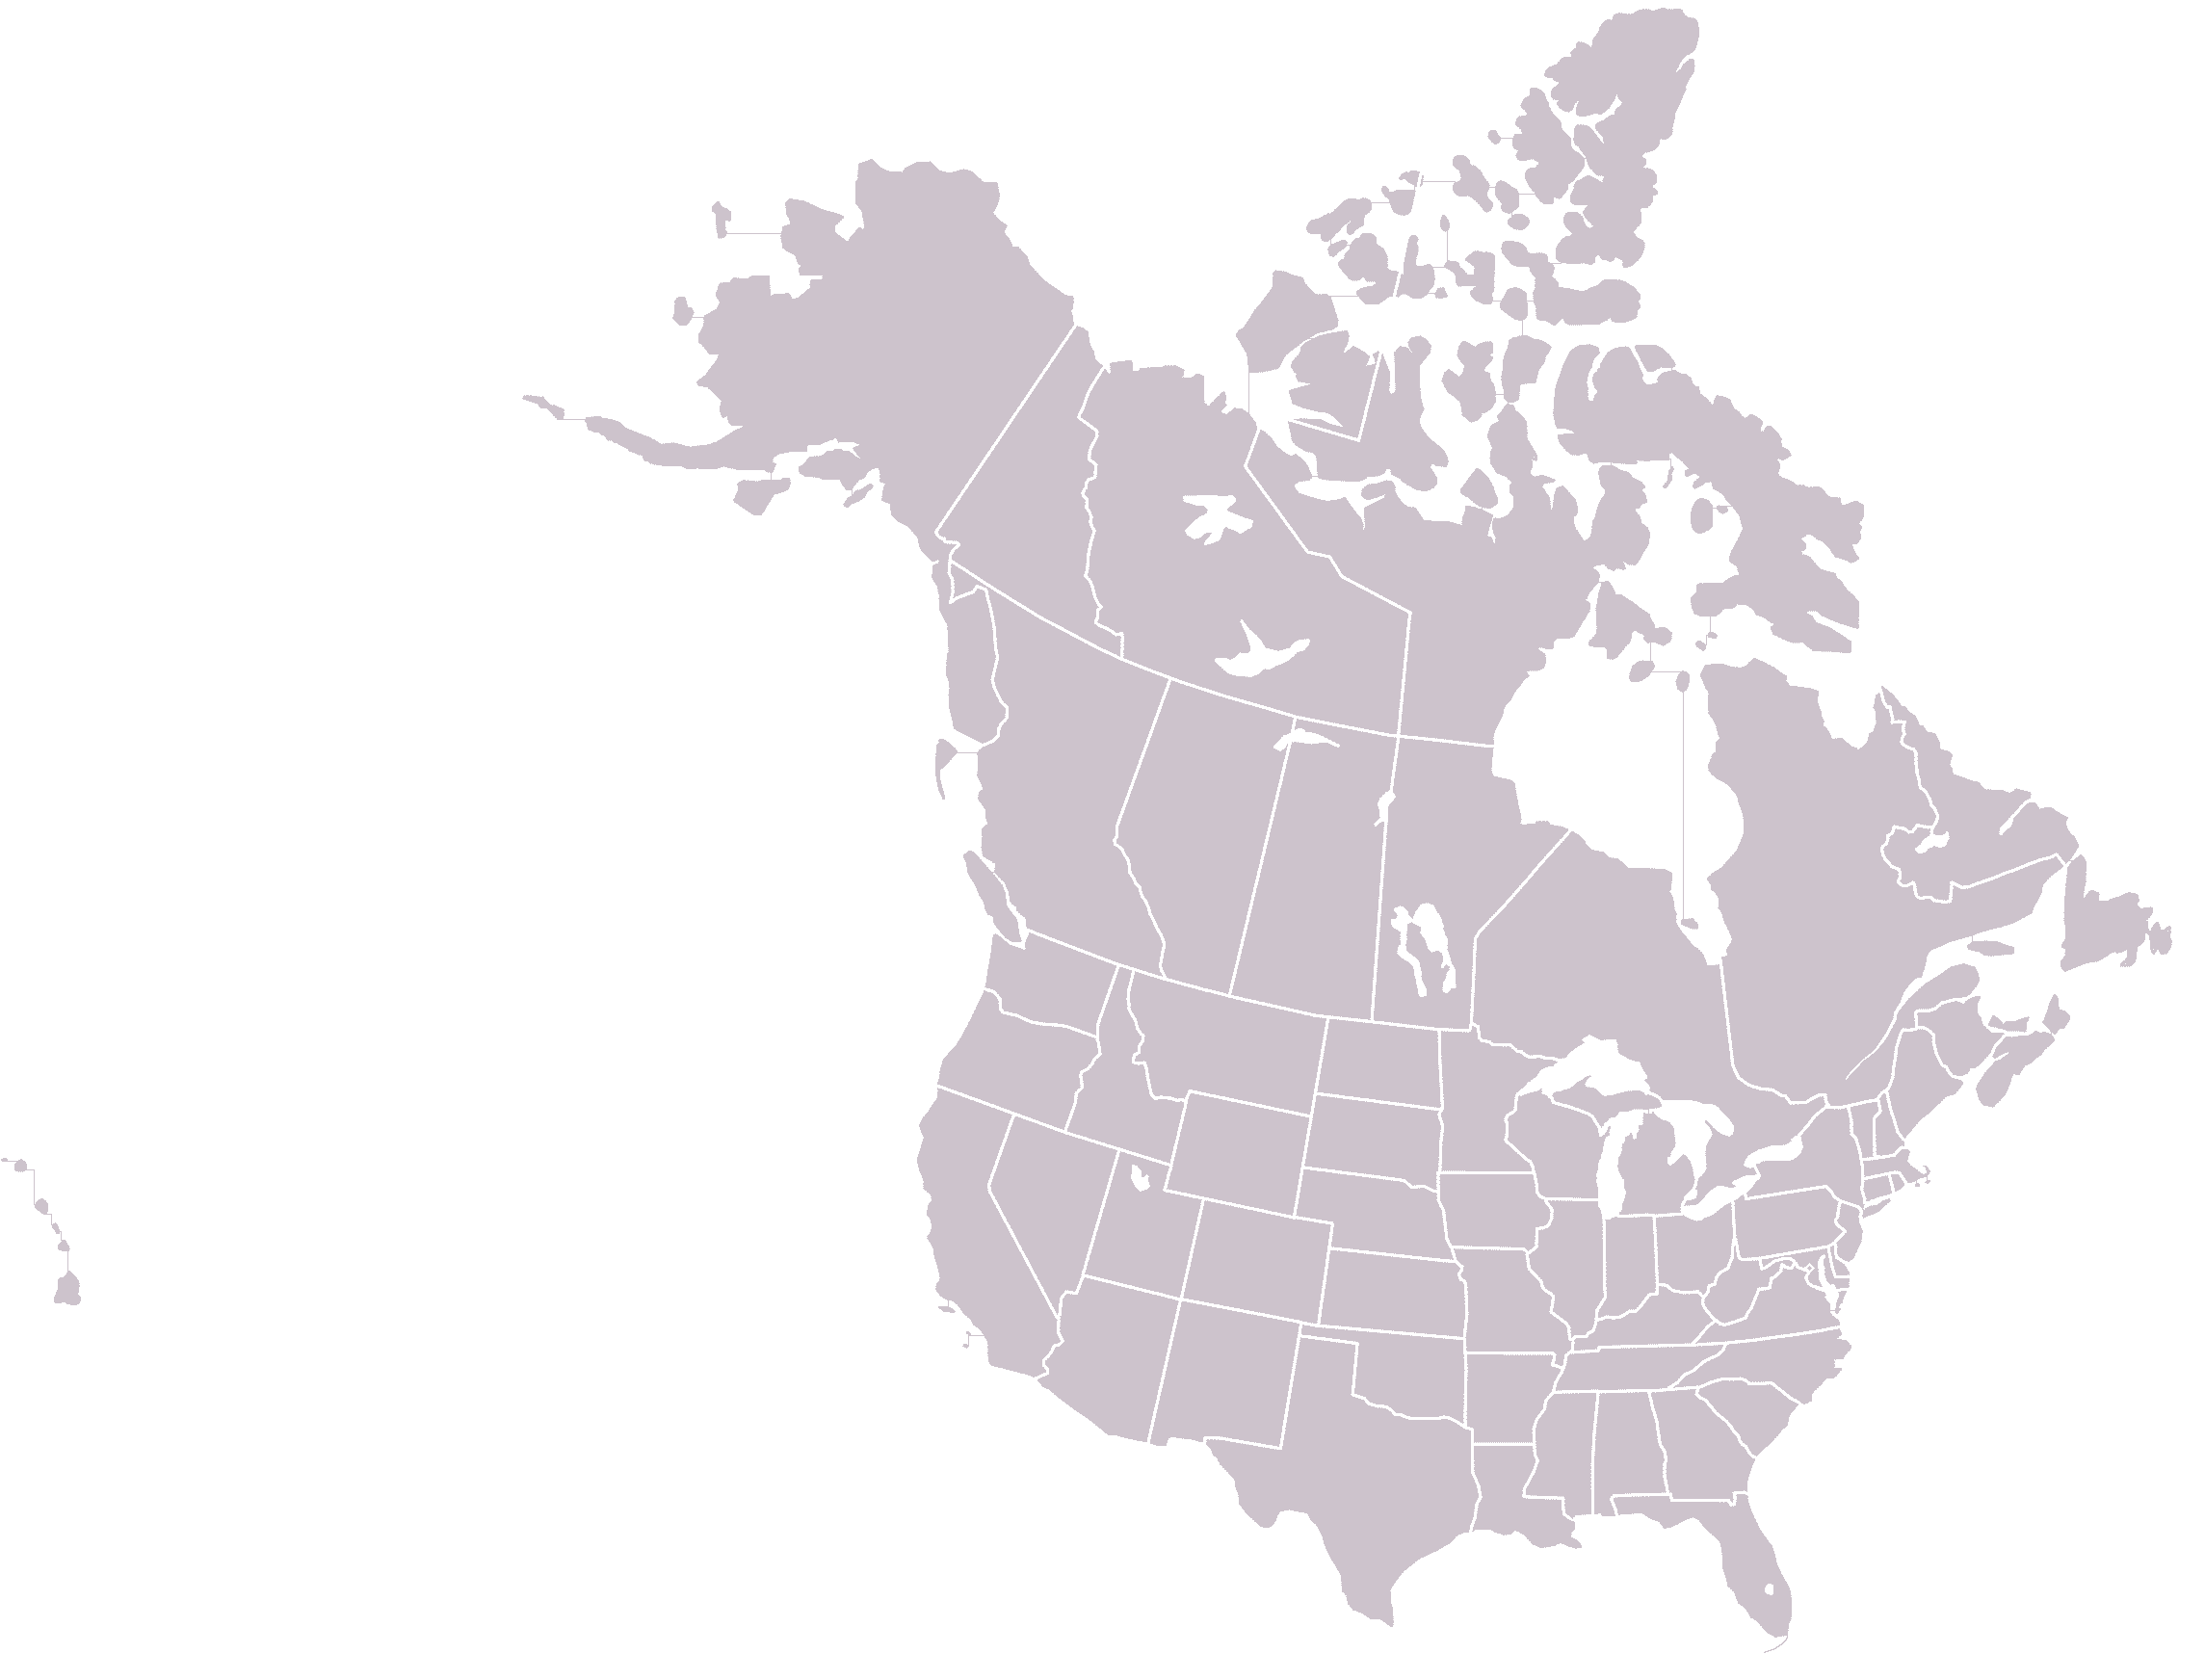 FileSIJHL CanadaUS Mappng Wikipedia - Us map wikipedia